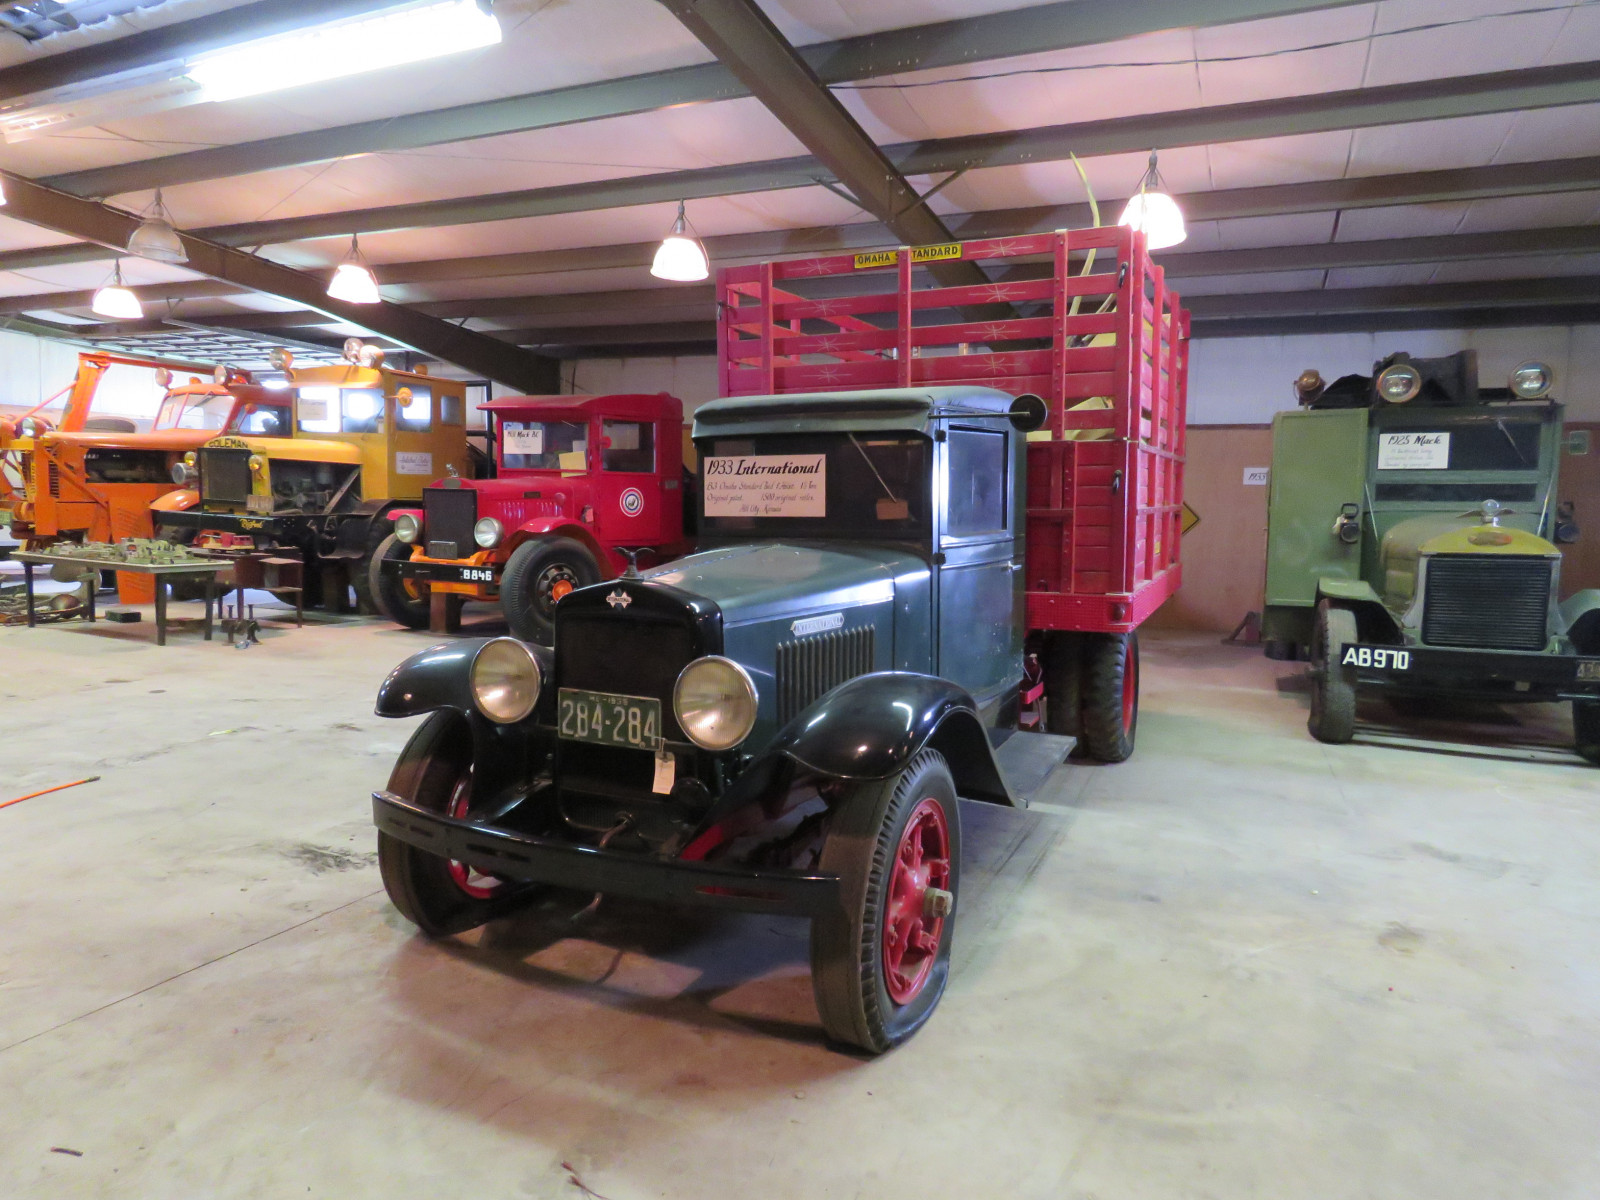 1933 International B-3 1 1/2 Ton Cattle Truck - Image 1